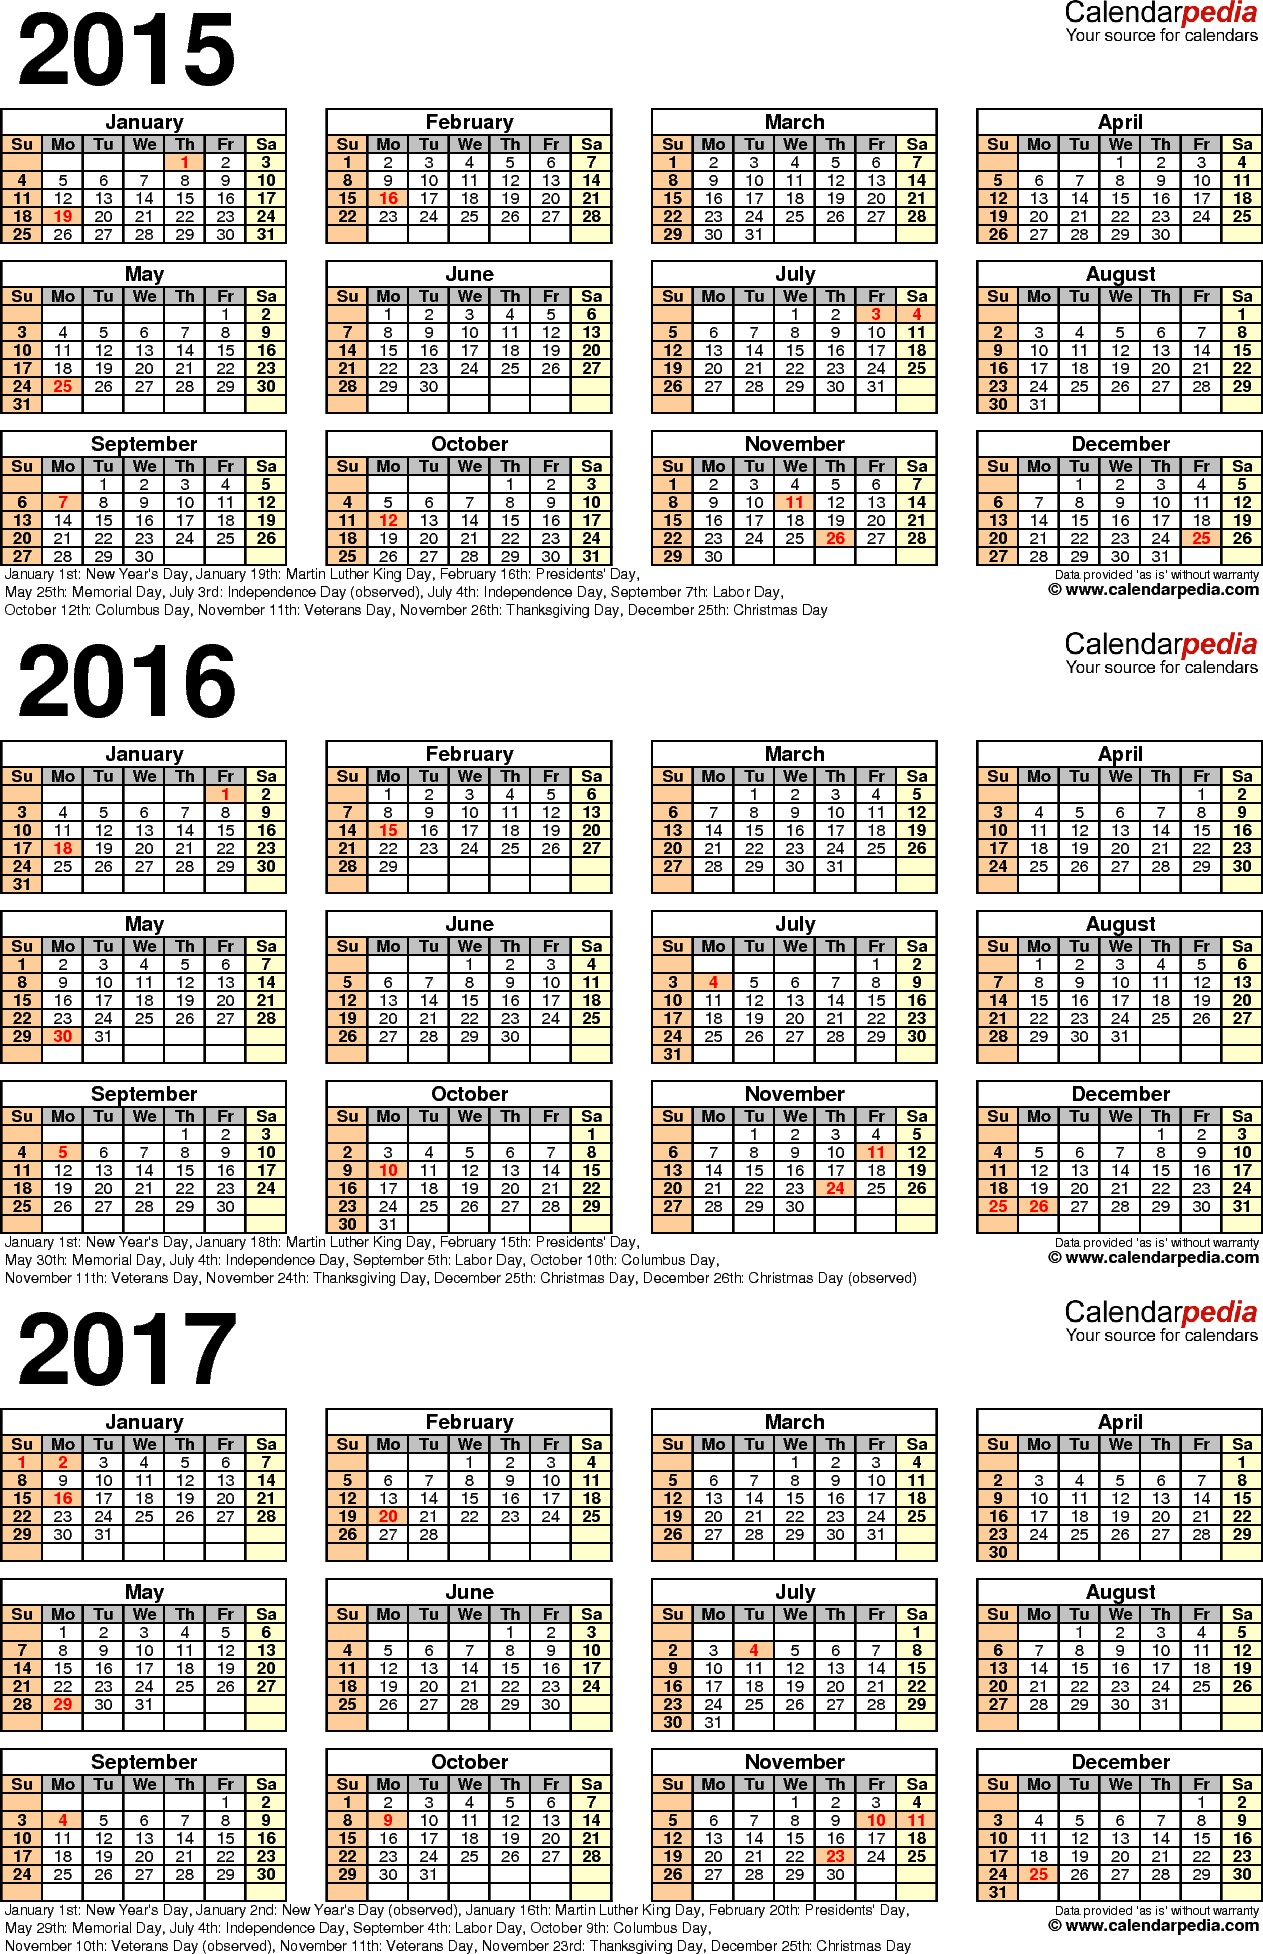 March 2019 Calendar Uk Printable Más Caliente 2015 2016 2017 Calendar 4 Three Year Printable Pdf Calendars Of March 2019 Calendar Uk Printable Más Reciente 2018 Editorial Calendar Templates Sports Team Template Blog Sneak P